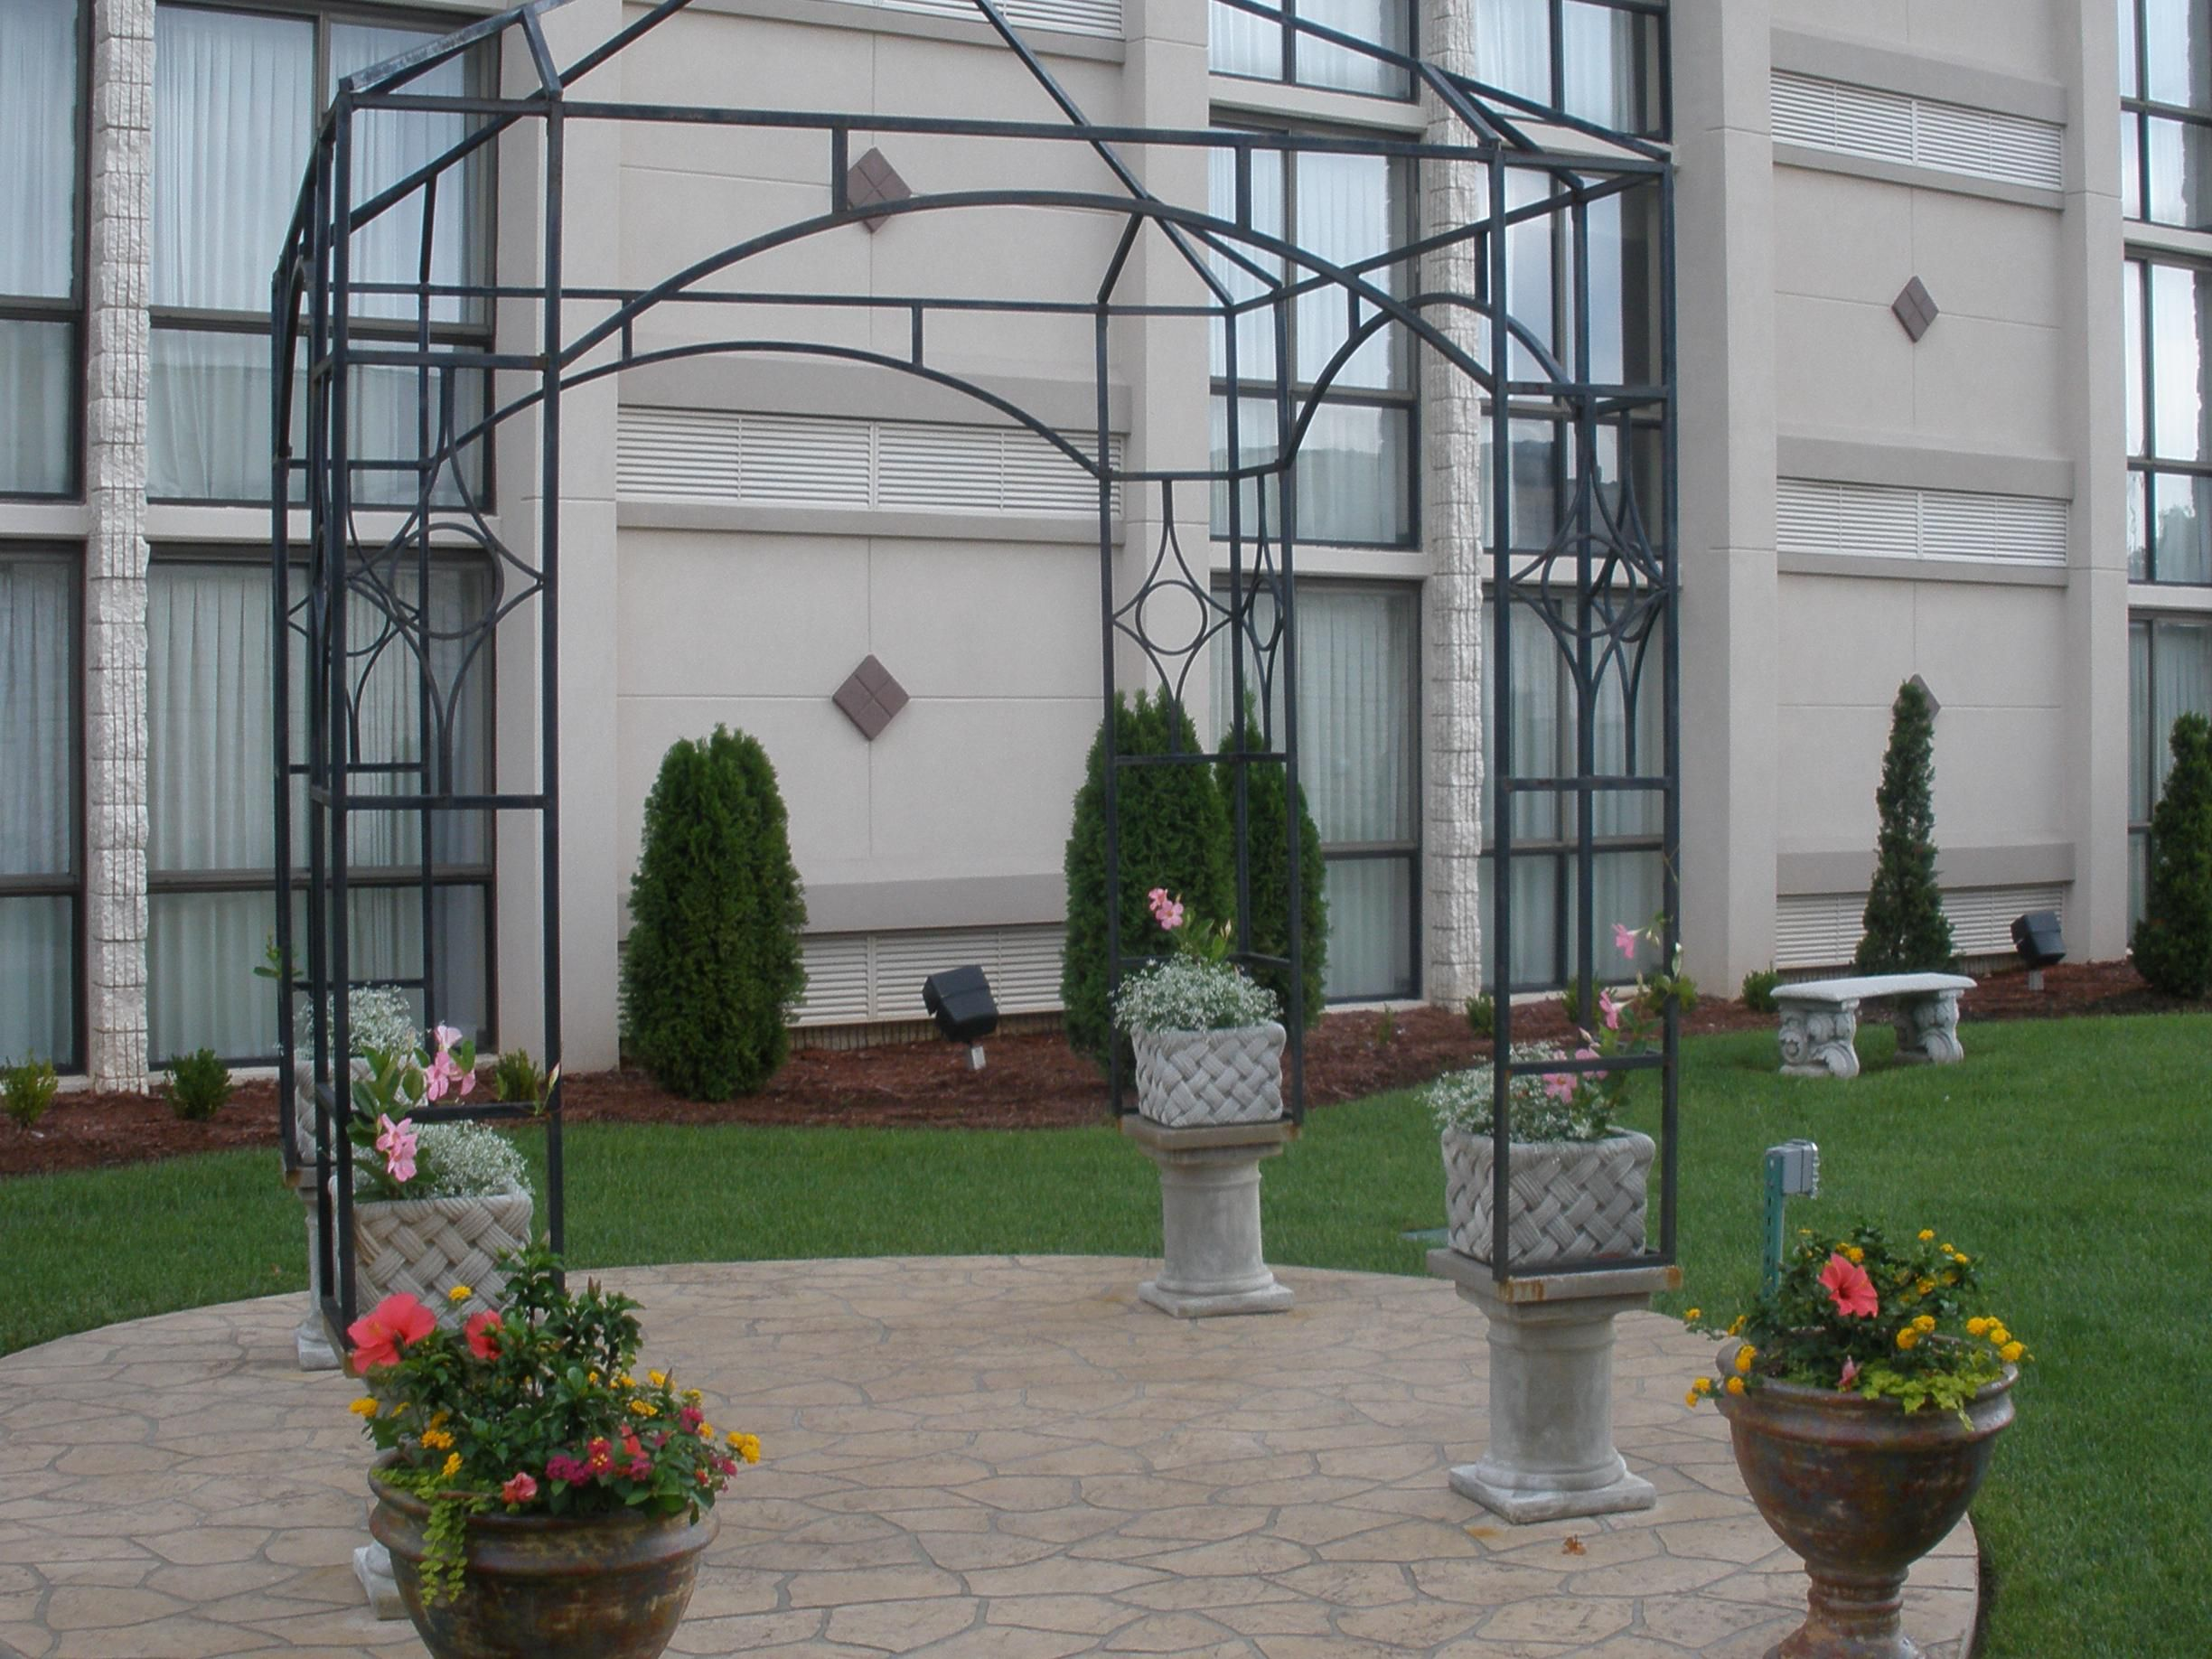 Gazebo in Courtyard Area